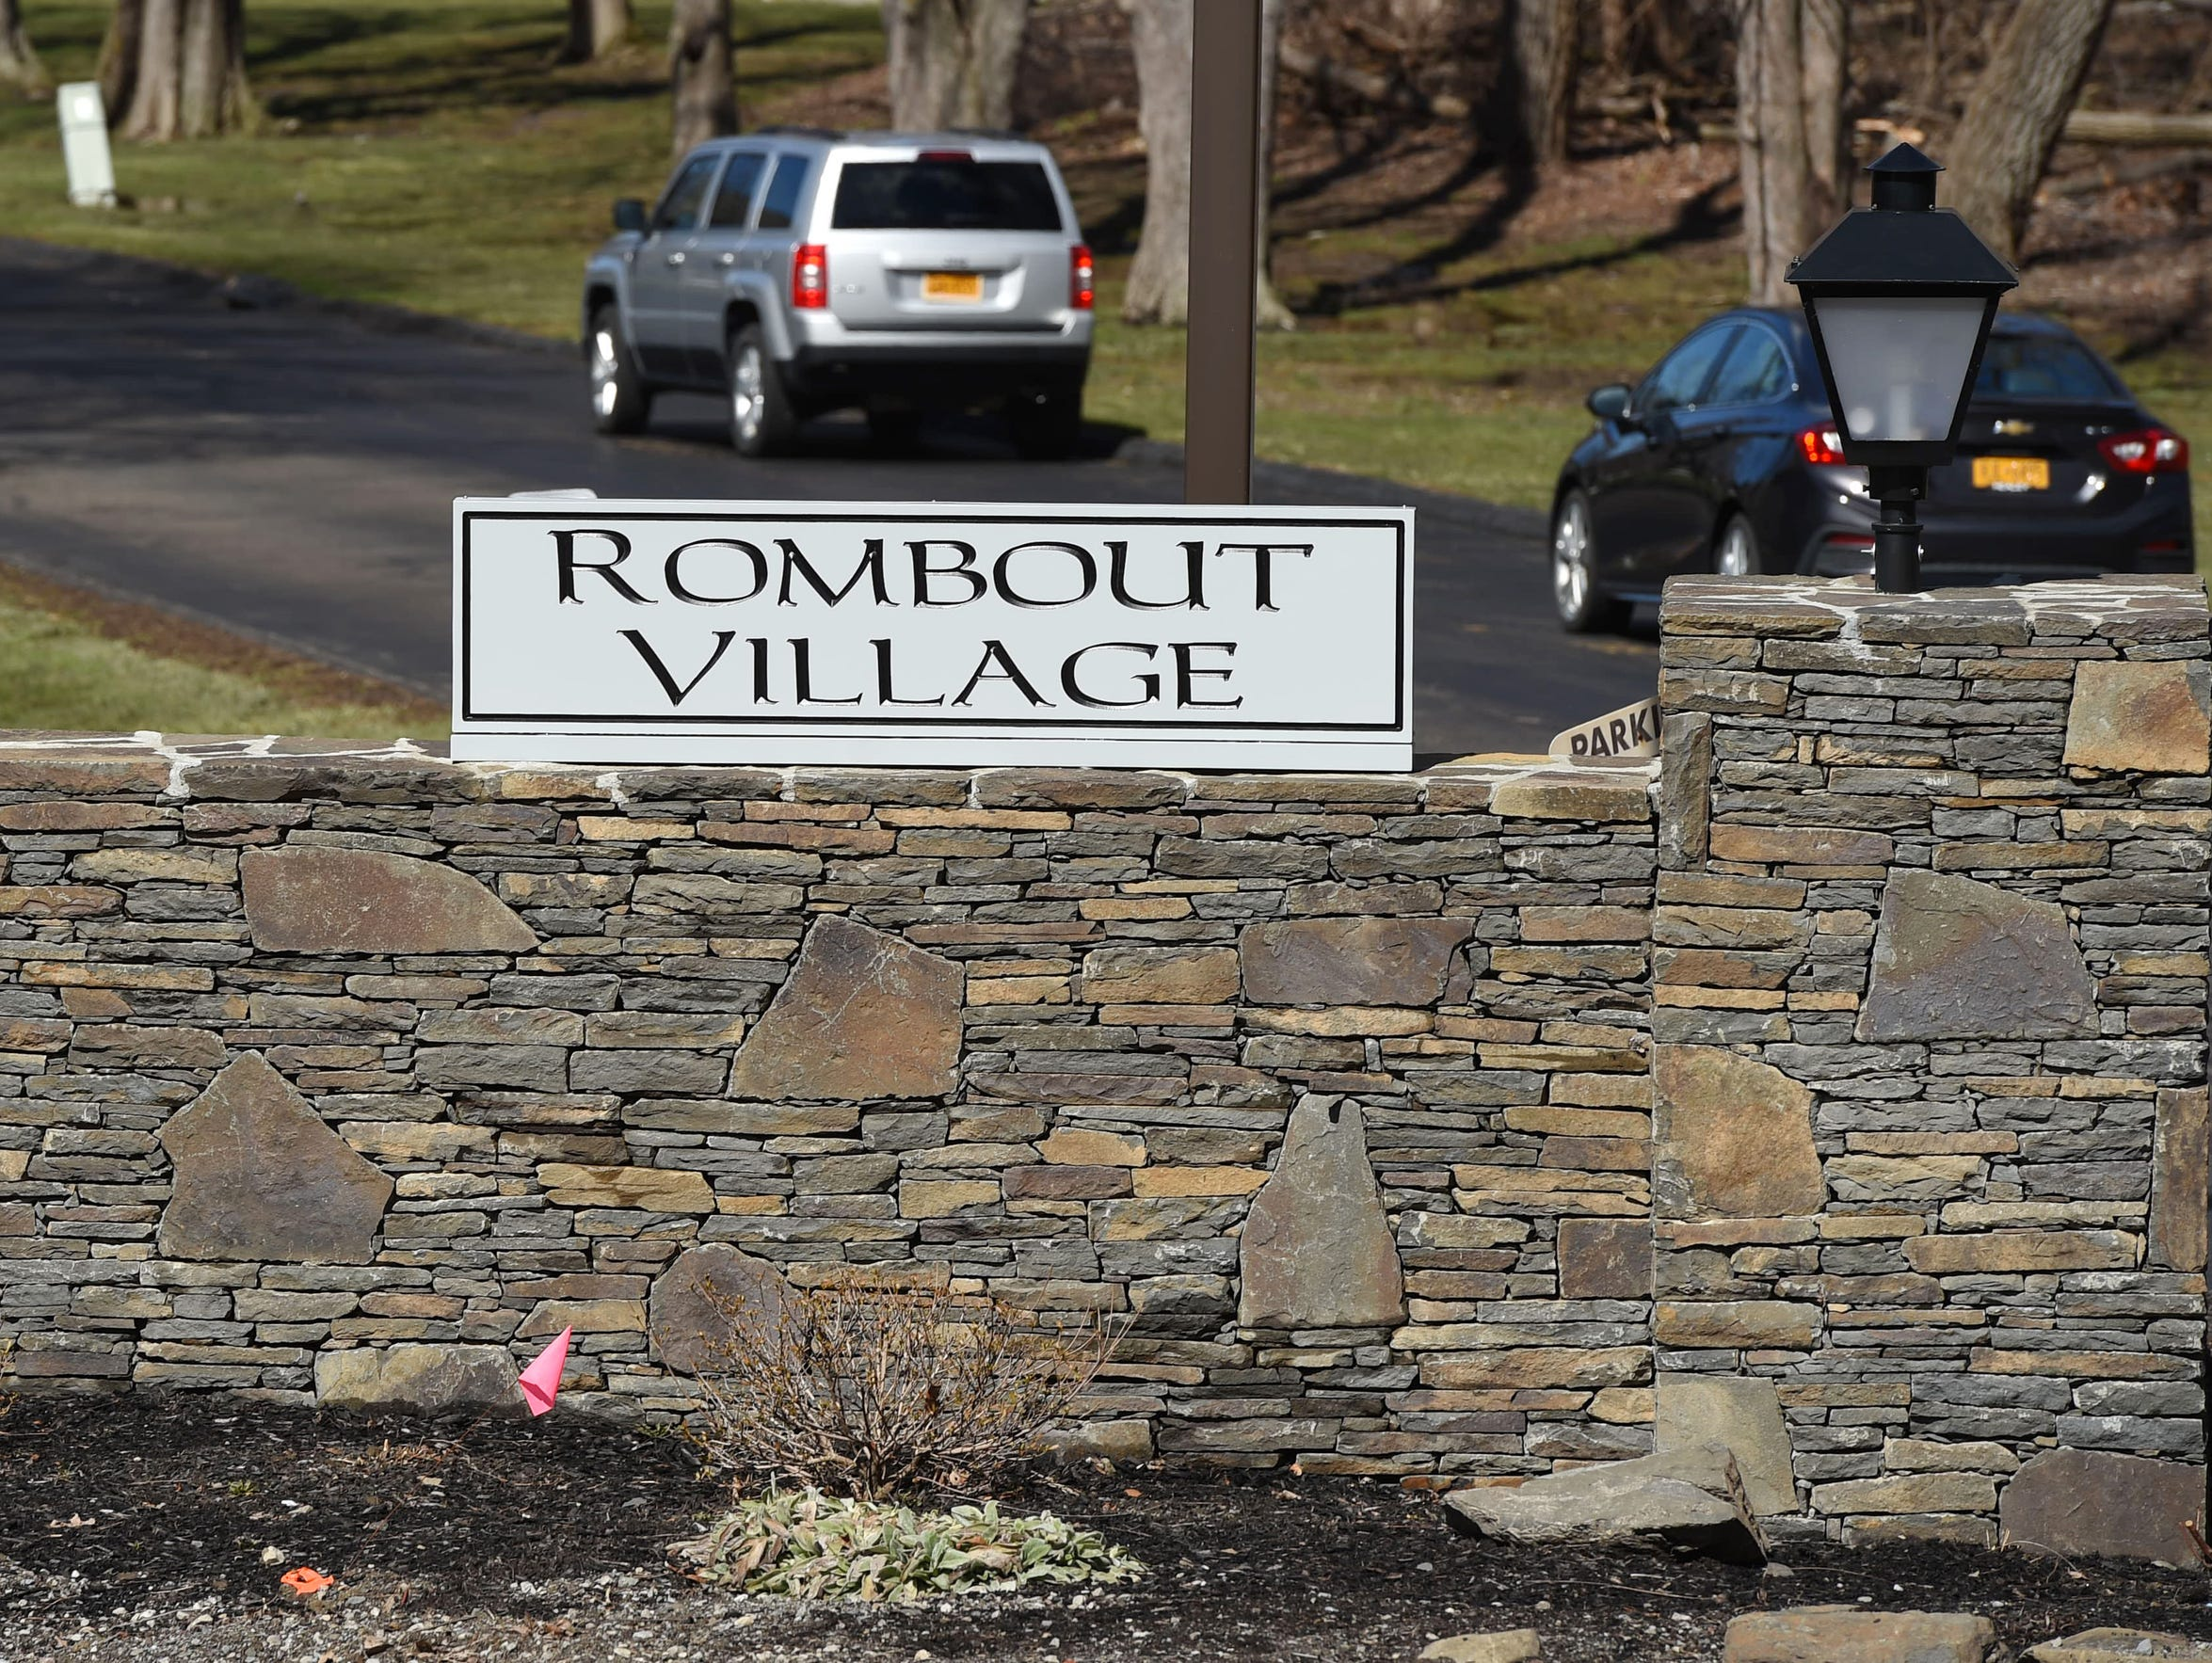 Rombout Village is a 144-unit cooperative apartment